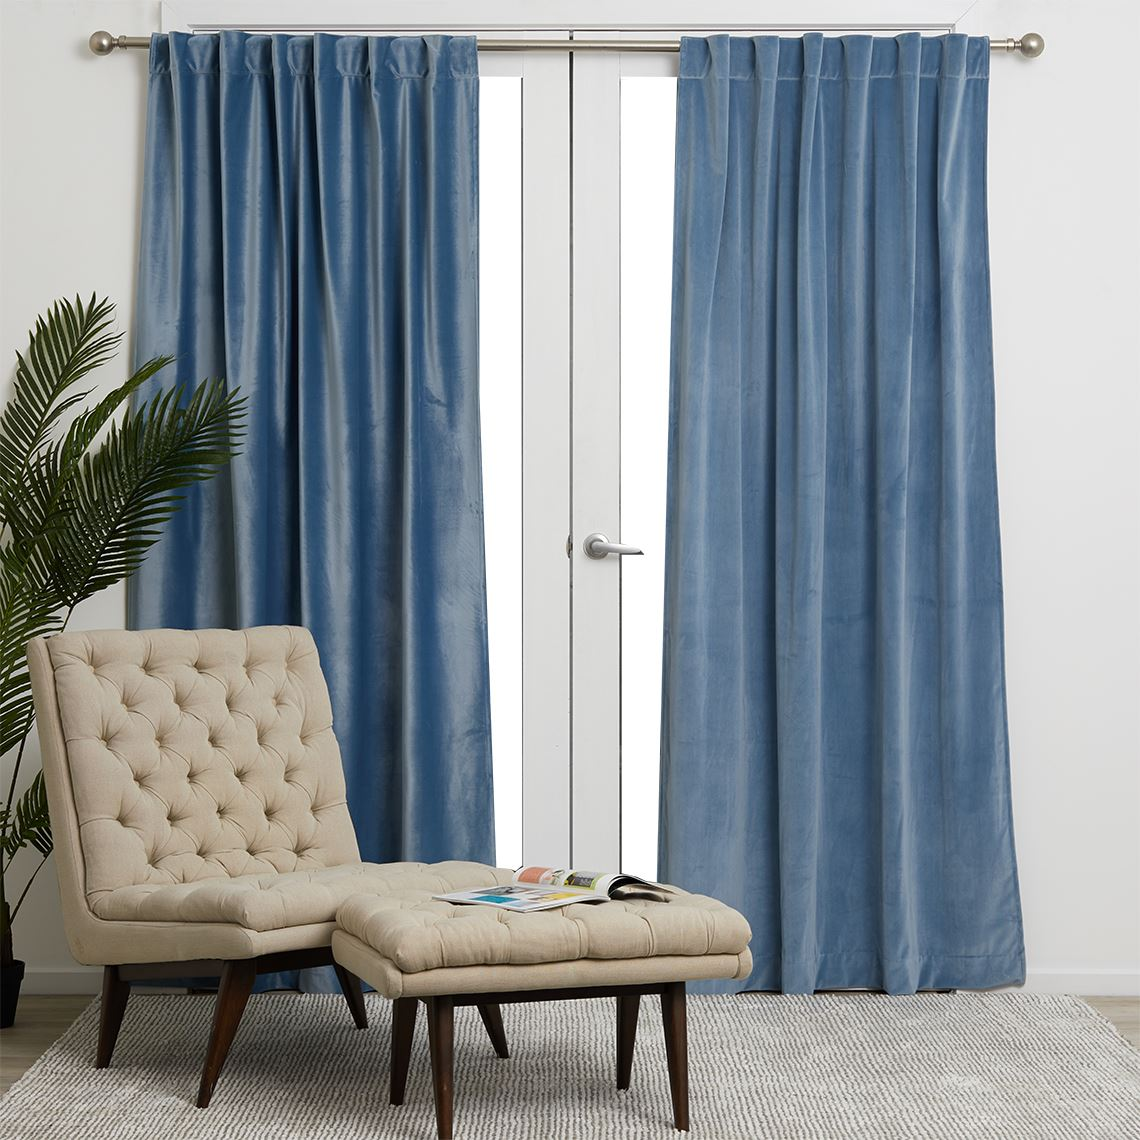 Velvet Concealed Tab, Powder Size W 180cm x D 0cm x H 250cm Polyester Freedom by Freedom, a Curtains for sale on Style Sourcebook